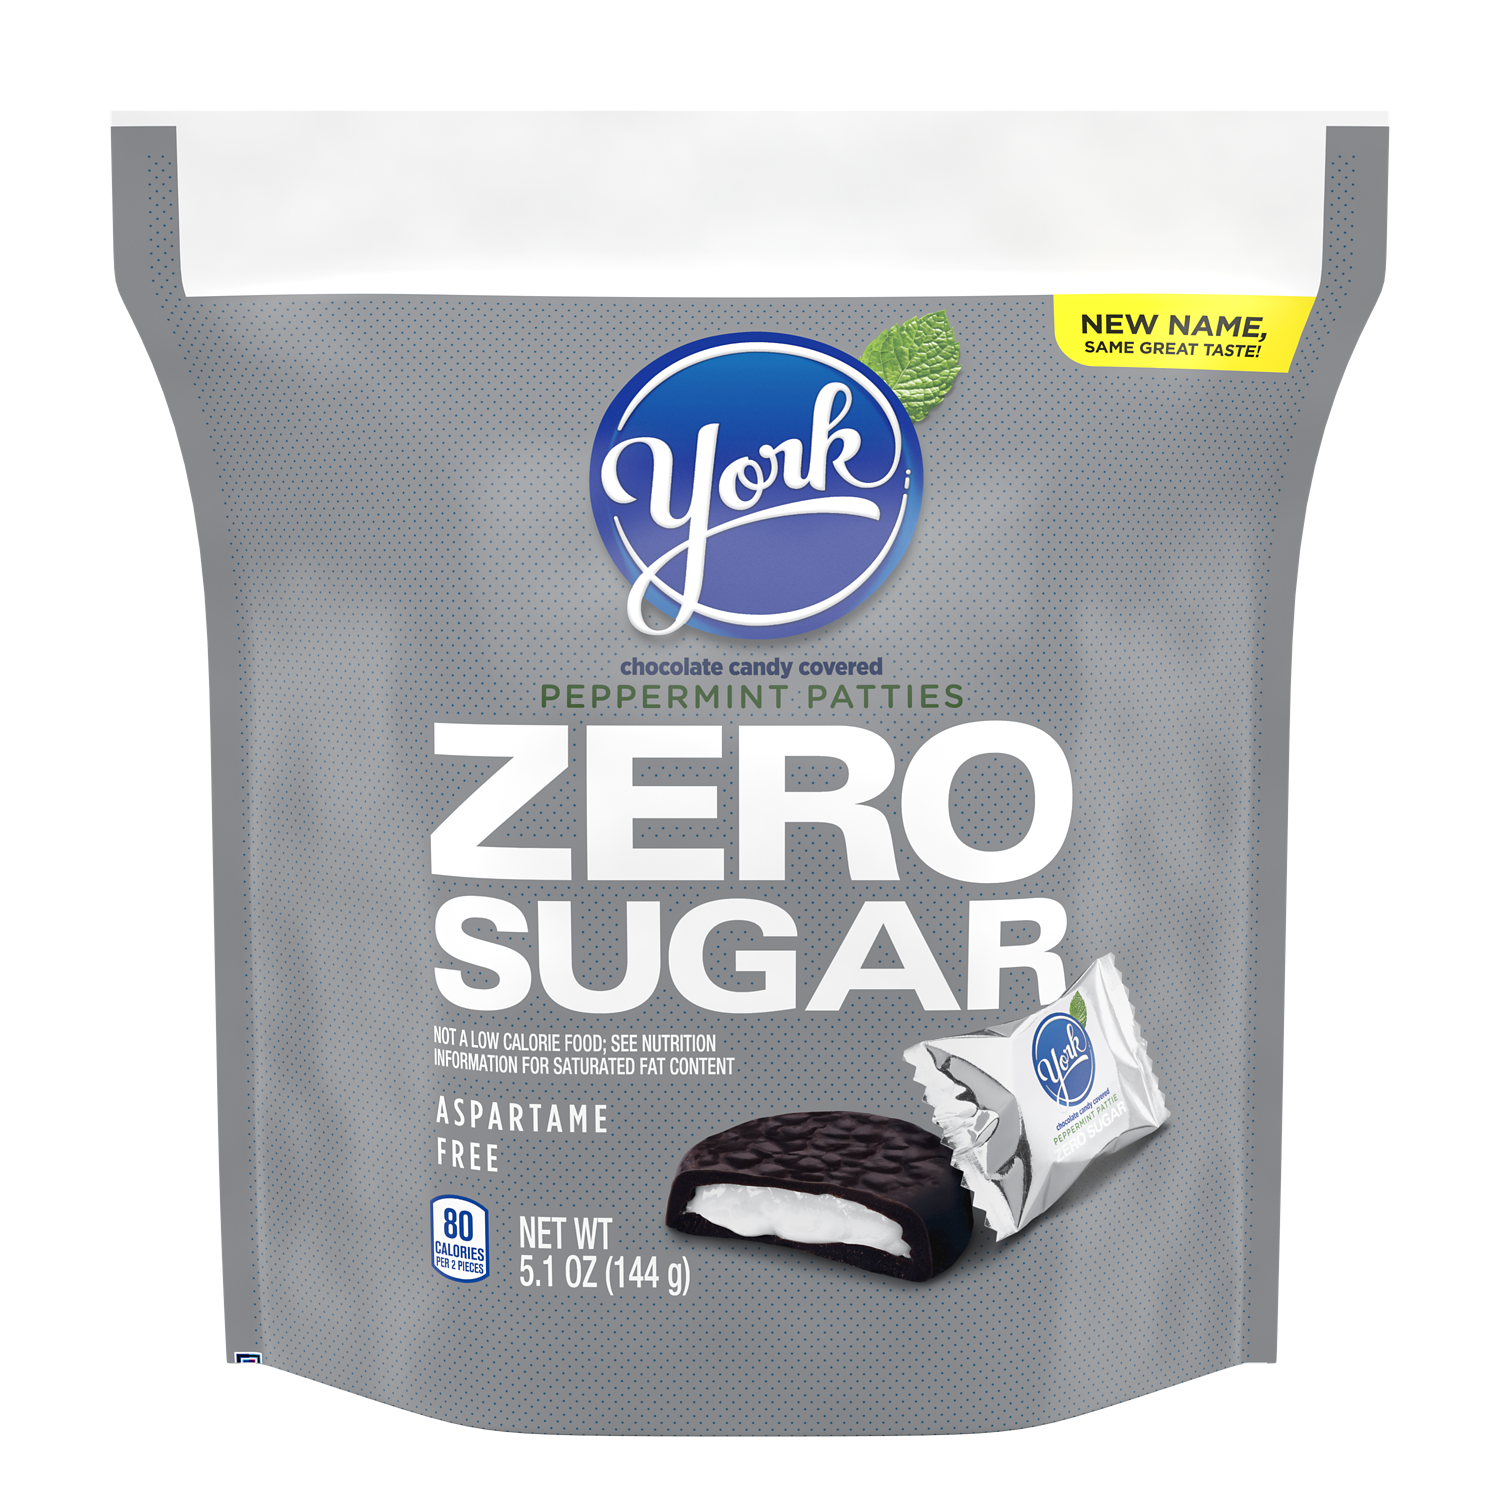 YORK Zero Sugar Dark Chocolate Candy Peppermint Patties, 5.1 oz bag - Front of Package